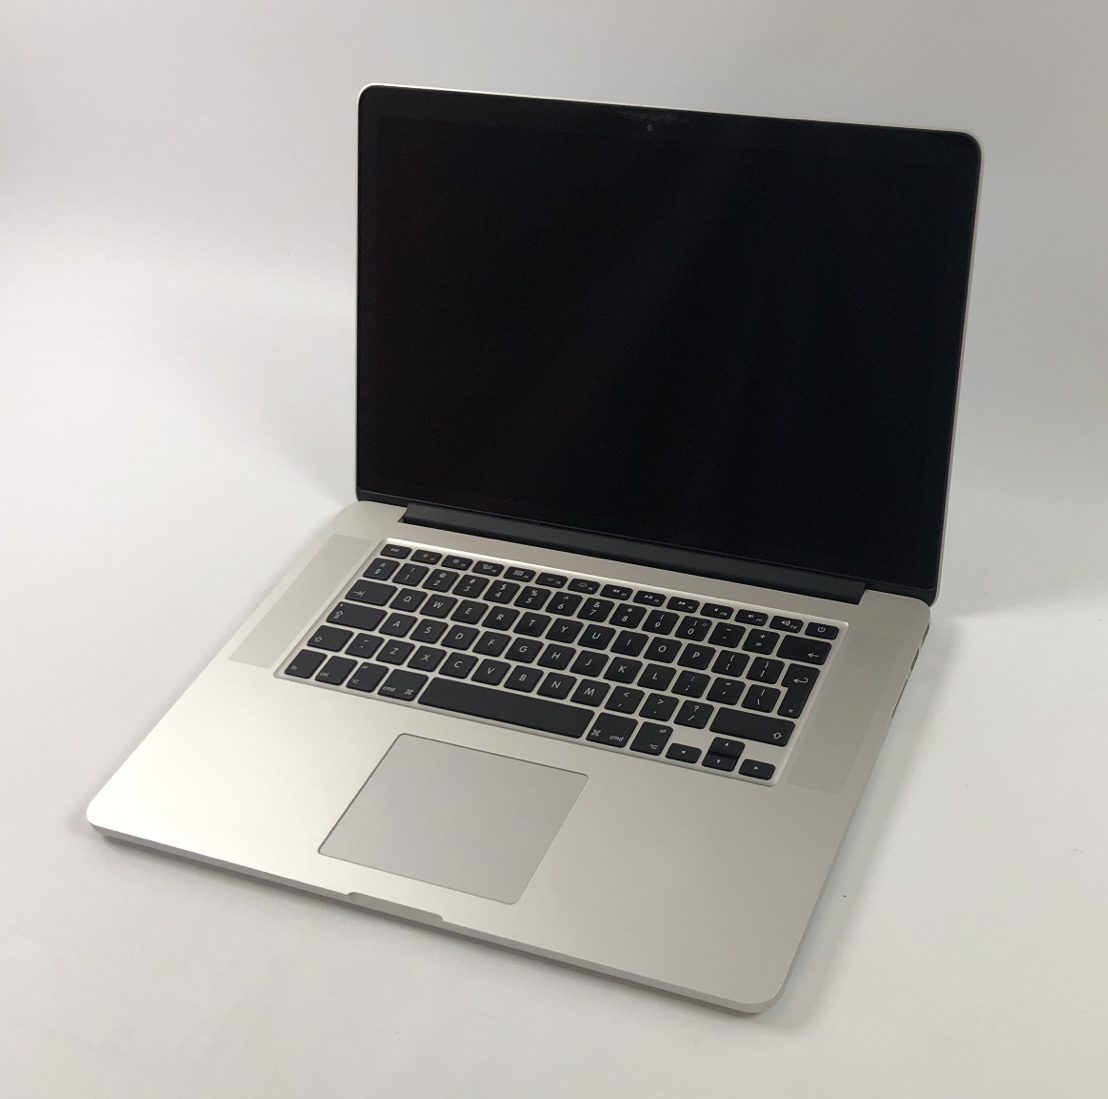 "MacBook Pro Retina 15"" Mid 2015 (Intel Quad-Core i7 2.8 GHz 16 GB RAM 1 TB SSD), Intel Quad-Core i7 2.8 GHz, 16 GB RAM, 1 TB SSD, imagen 1"